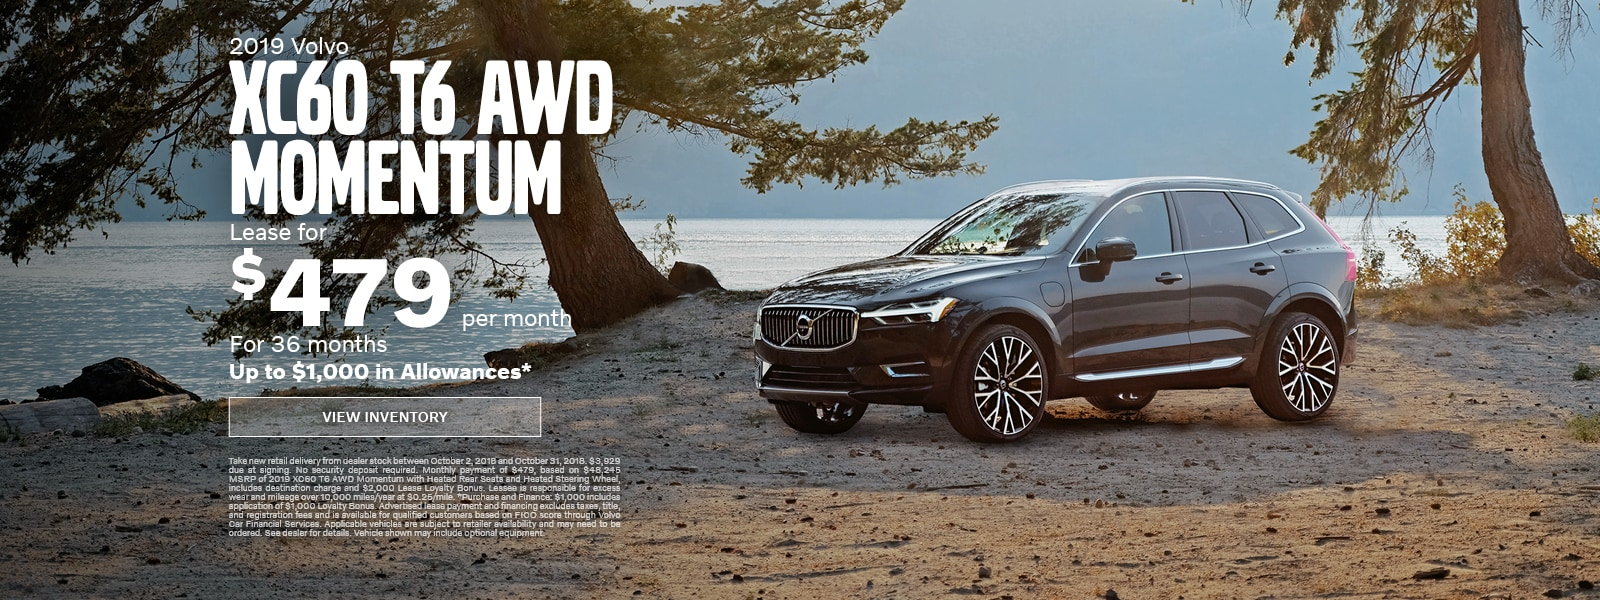 New Volvo PreOwned Car Dealer In Manchester NH Near - Nh car show bedford